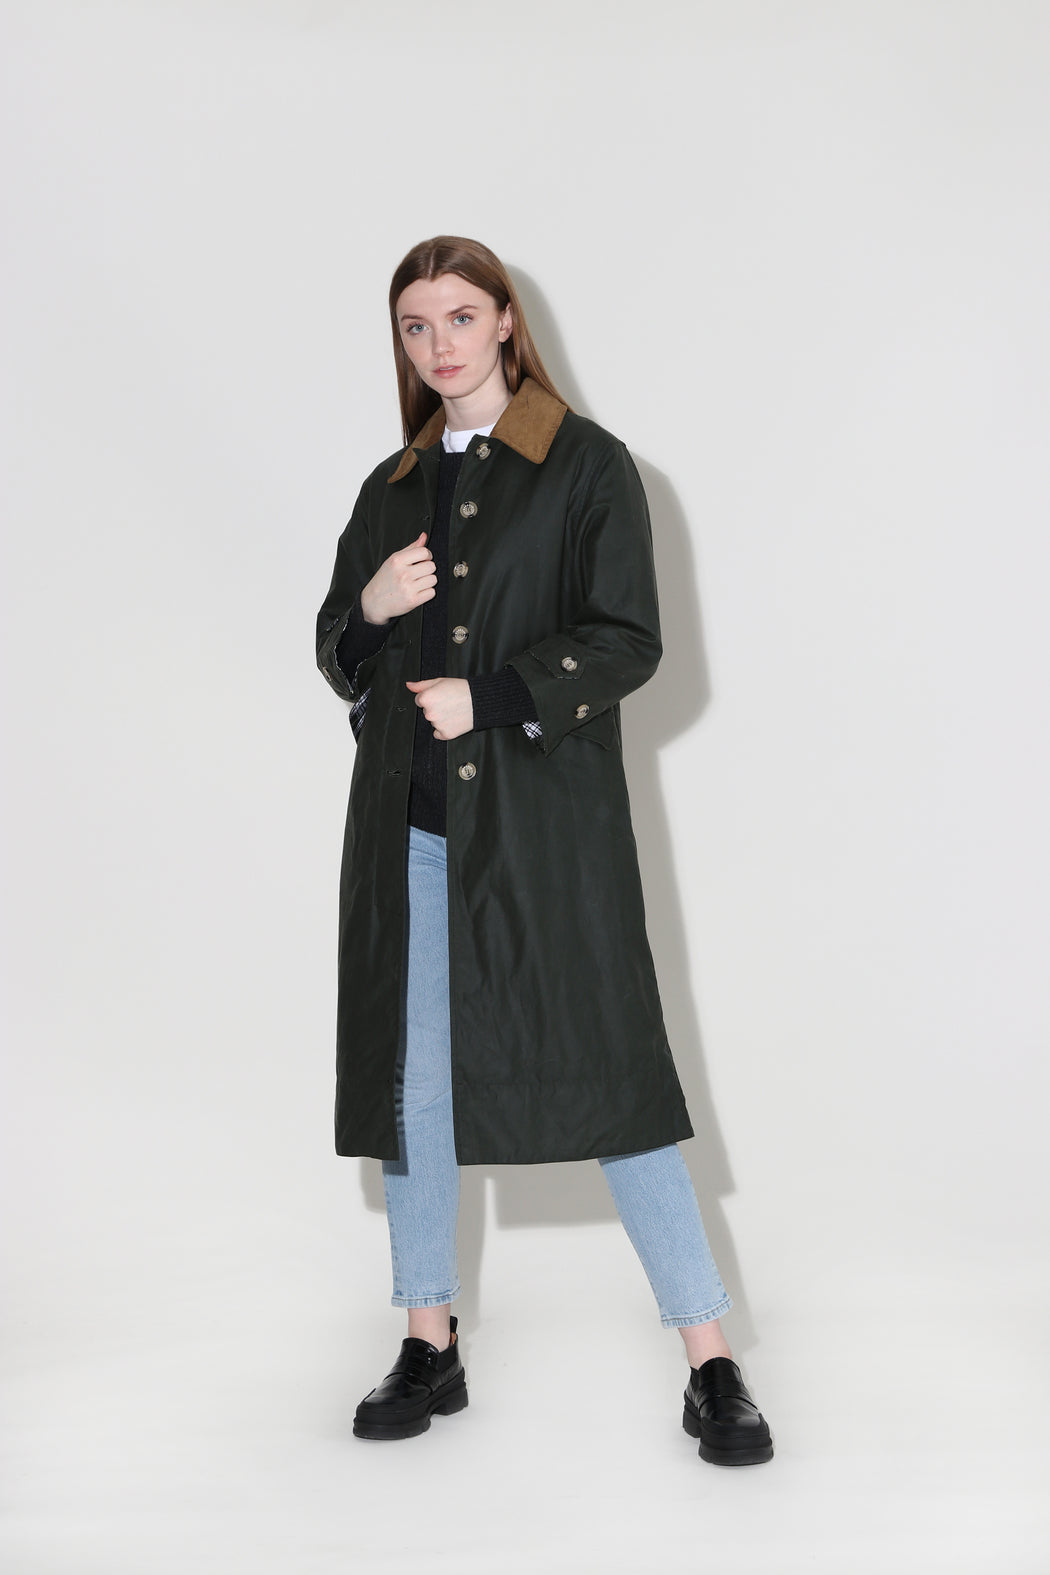 Barbour Alexa Chung Maisie Waxed Cotton Jacket Duffle Bag